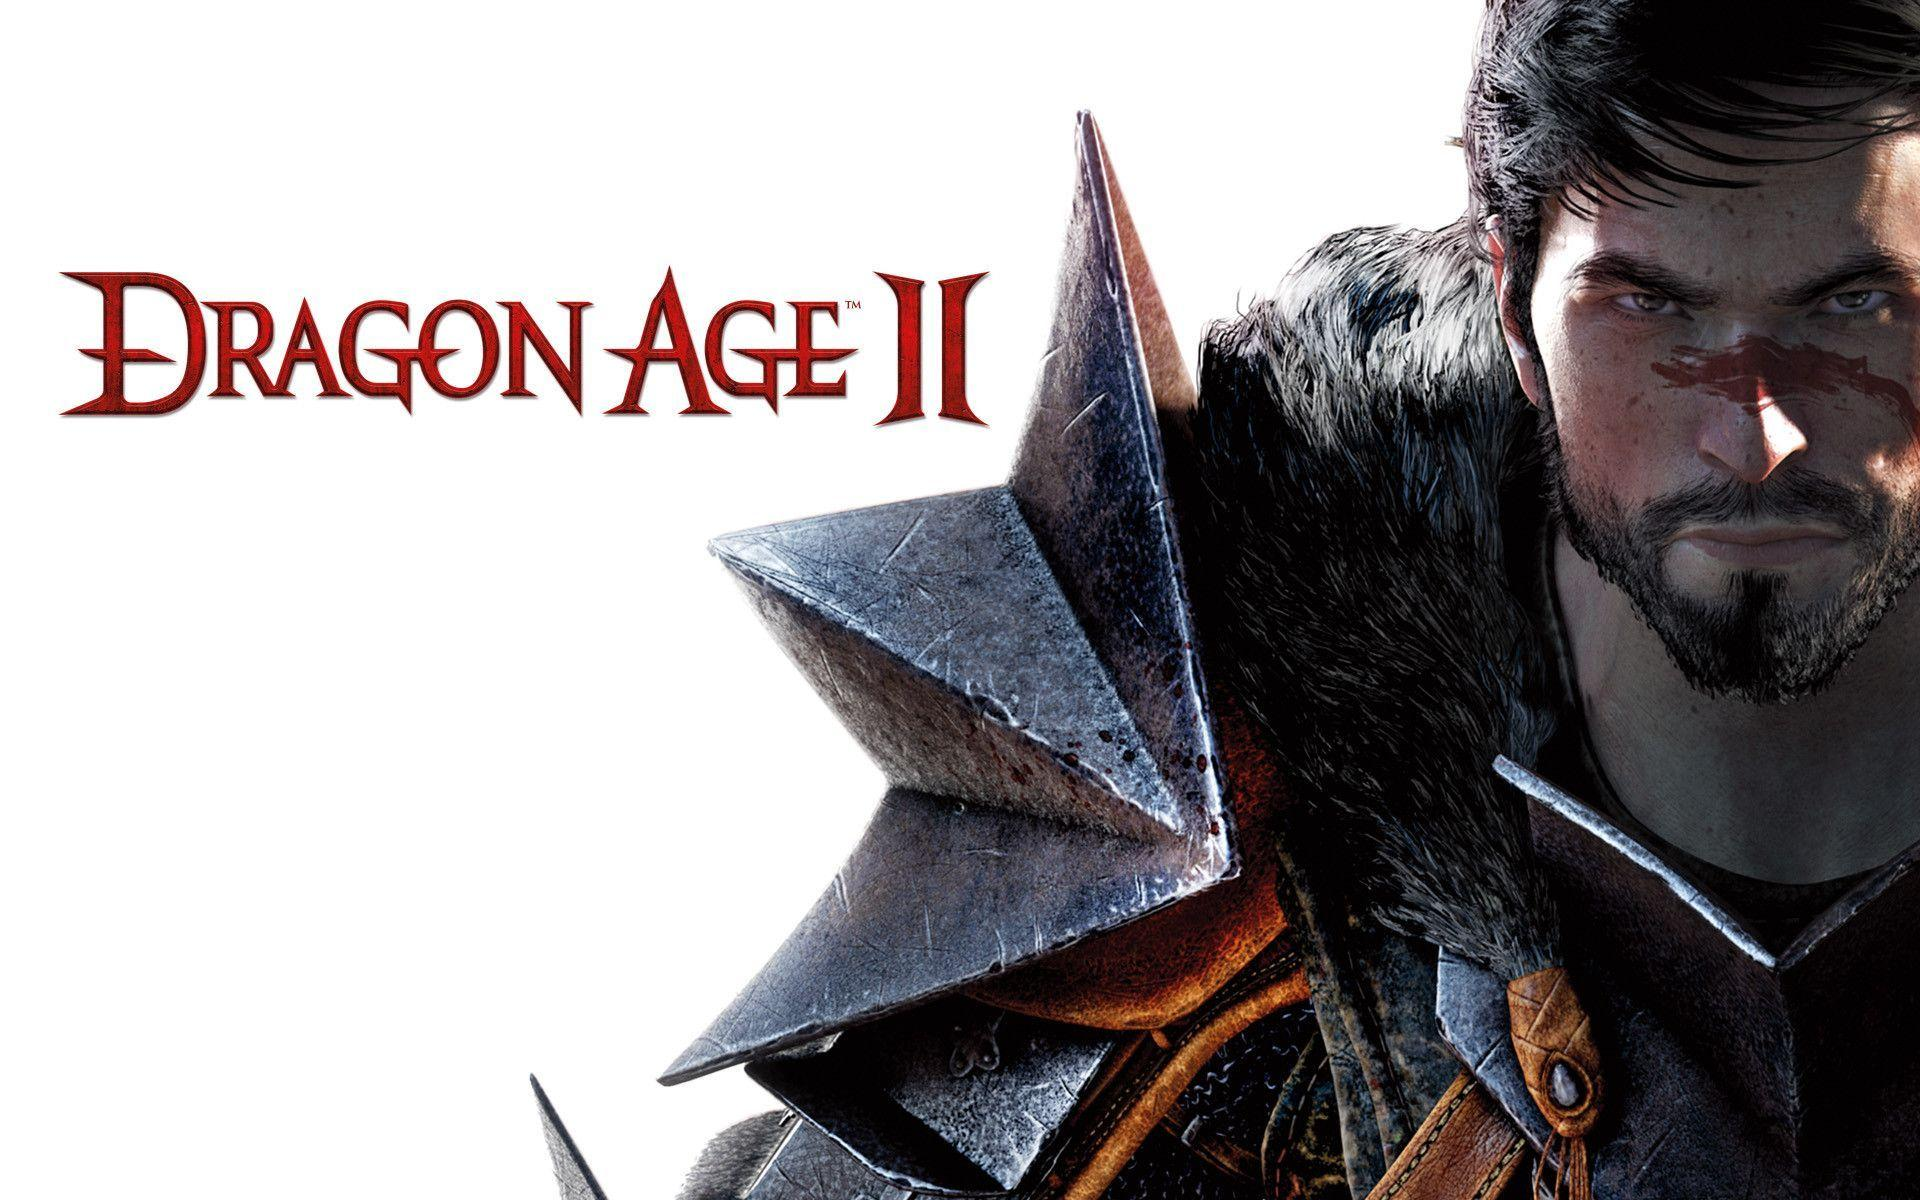 Dragon Age Wallpapers - Full HD wallpaper search - page 9